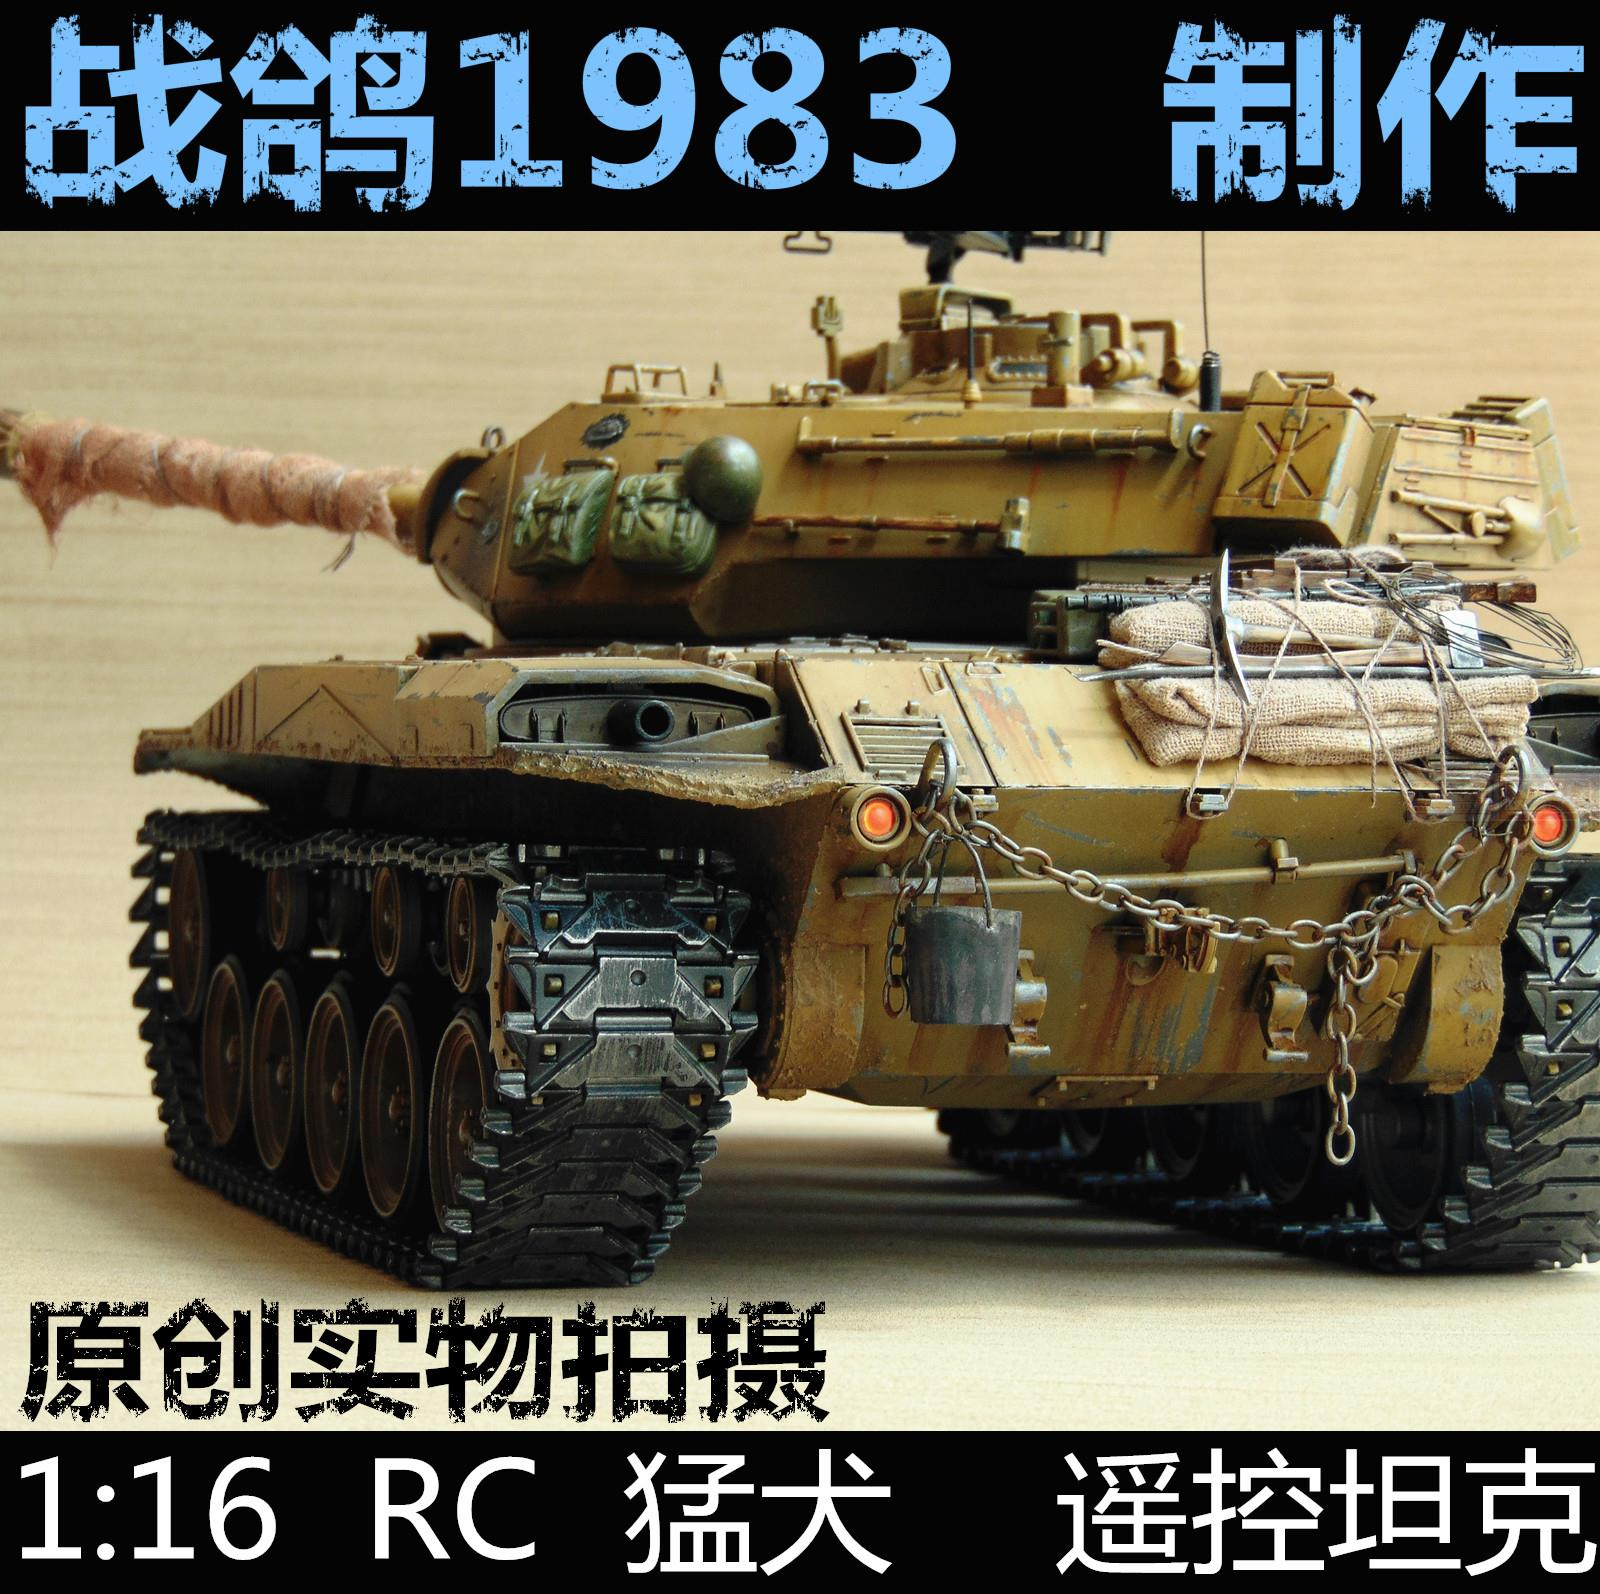 KNL HOBBY 1/16 RC Bulldog M41A3 tank model remote control OEM coating of paint to do the old new phoenix 11207 b777 300er pk gii 1 400 skyteam aviation indonesia commercial jetliners plane model hobby